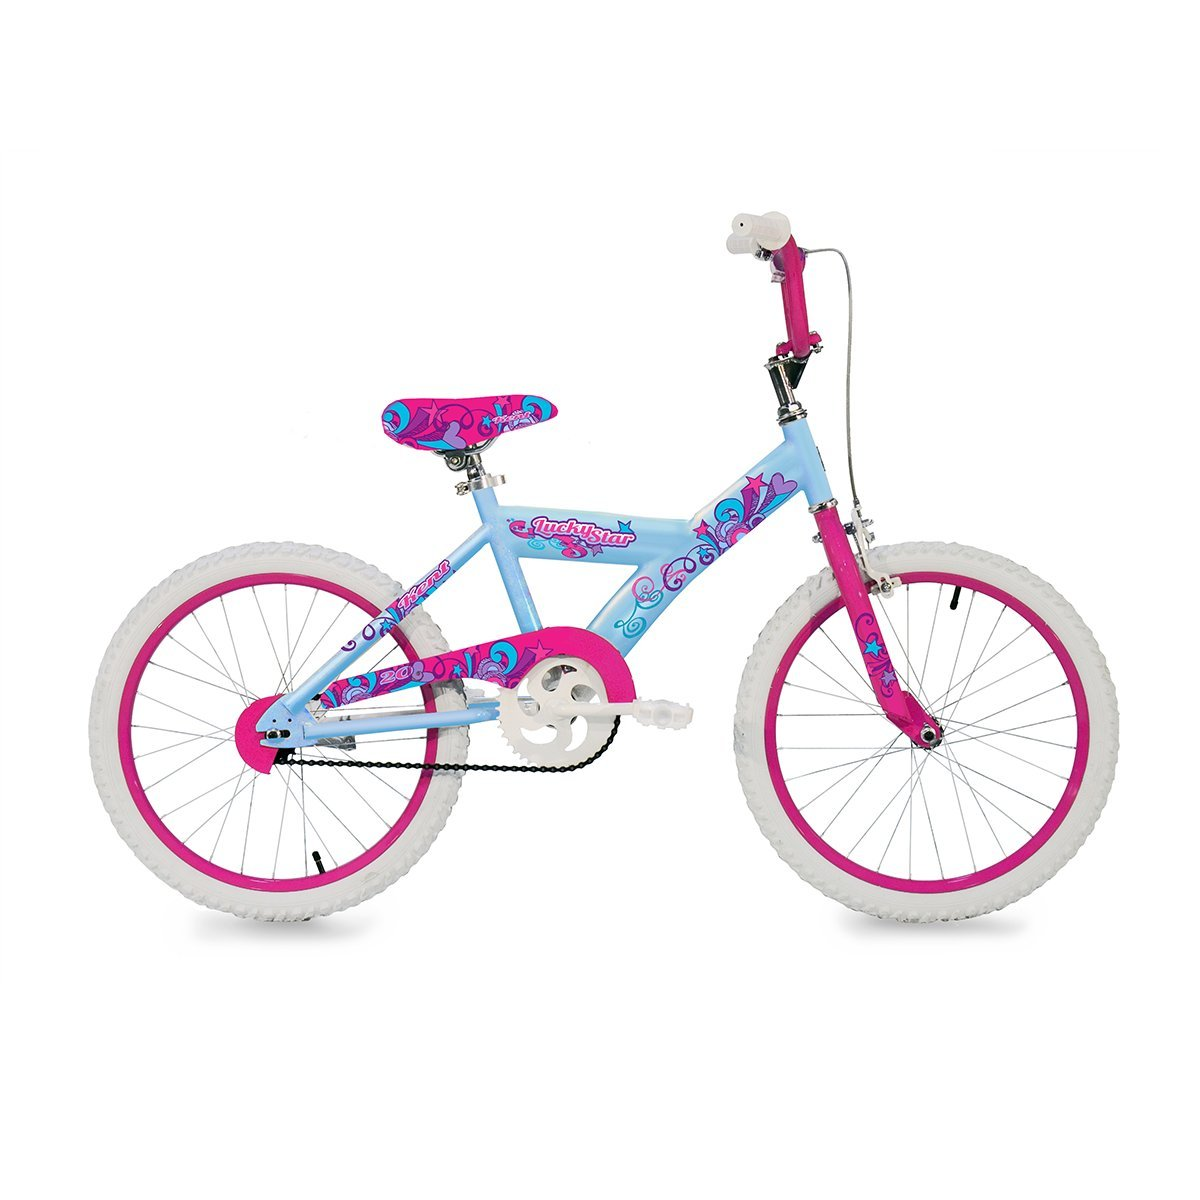 Best Girls Bikes 20 Inch Girls Bike Inch W